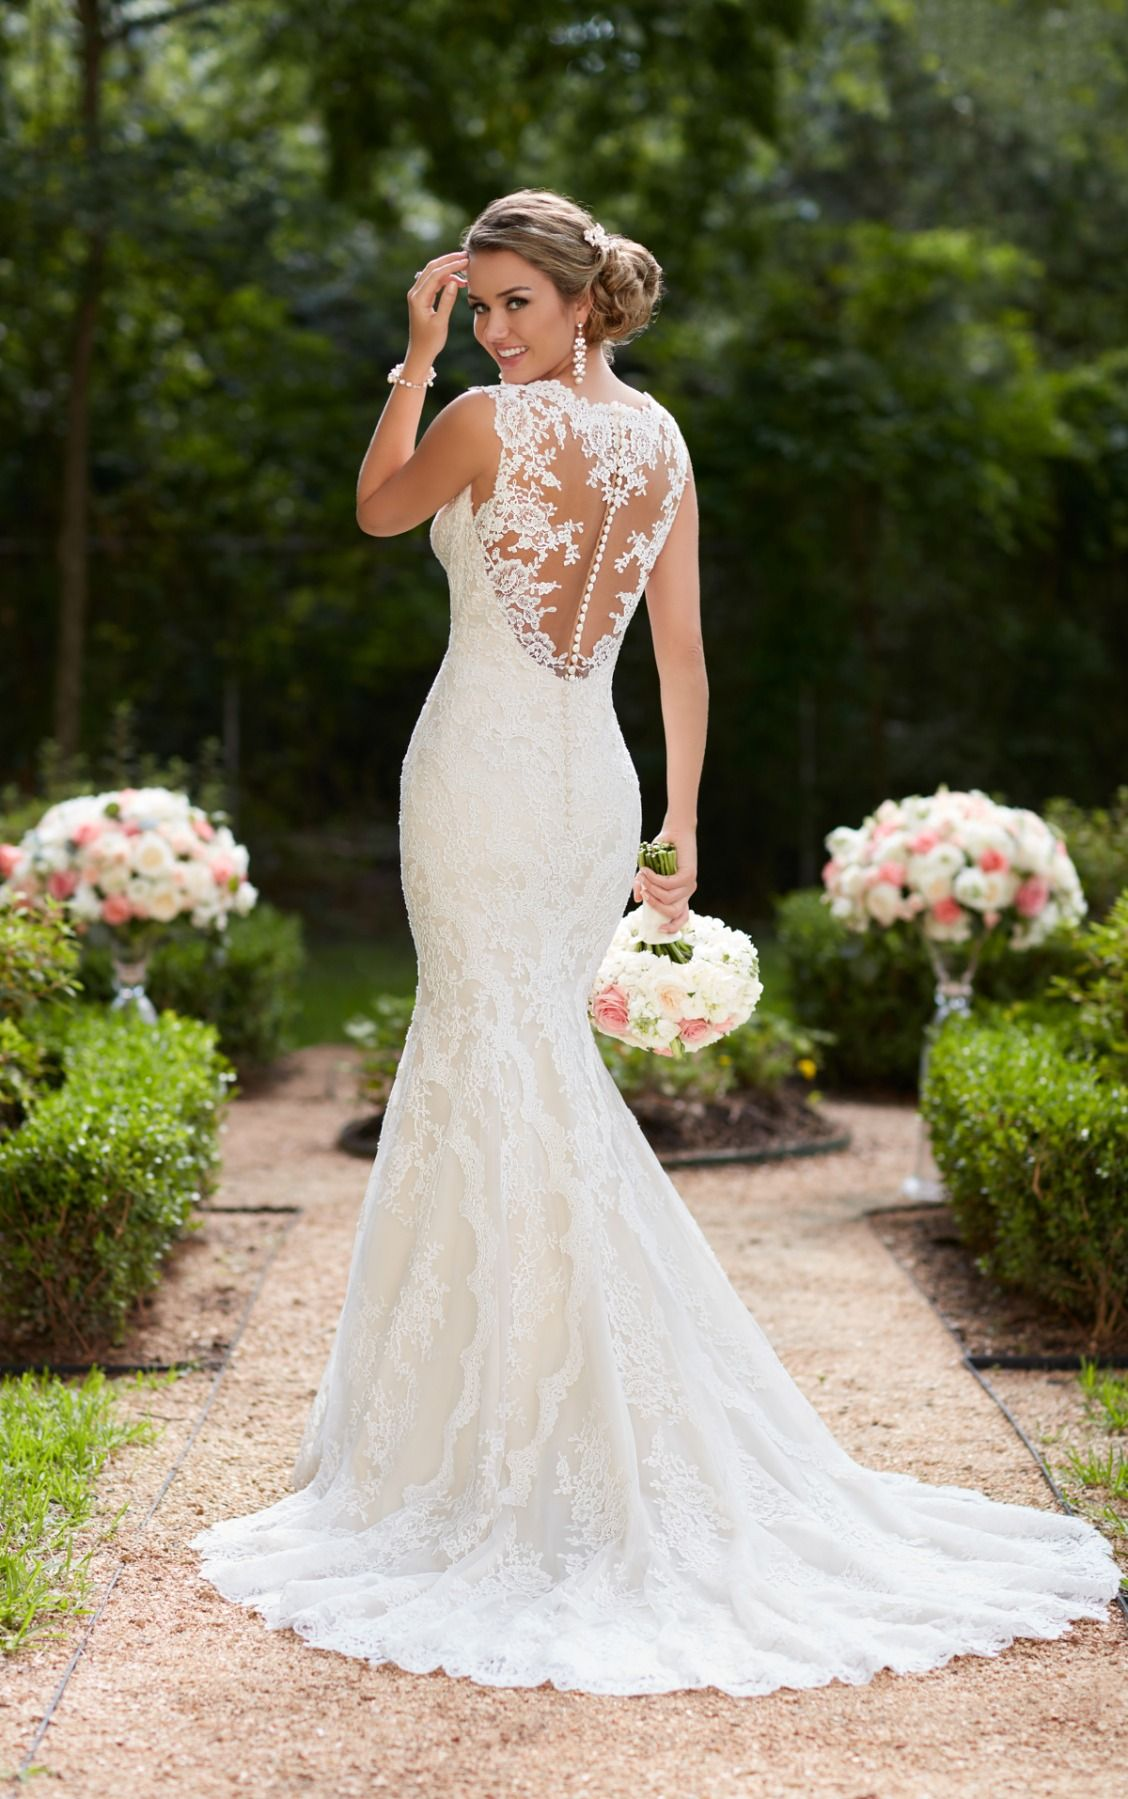 This vintage lace trumpet wedding dress by Stella York features lace and  tulle over lavish satin that creates a sleek silhouette. A soft organza  back plays ... 8e7ed9bf7e48